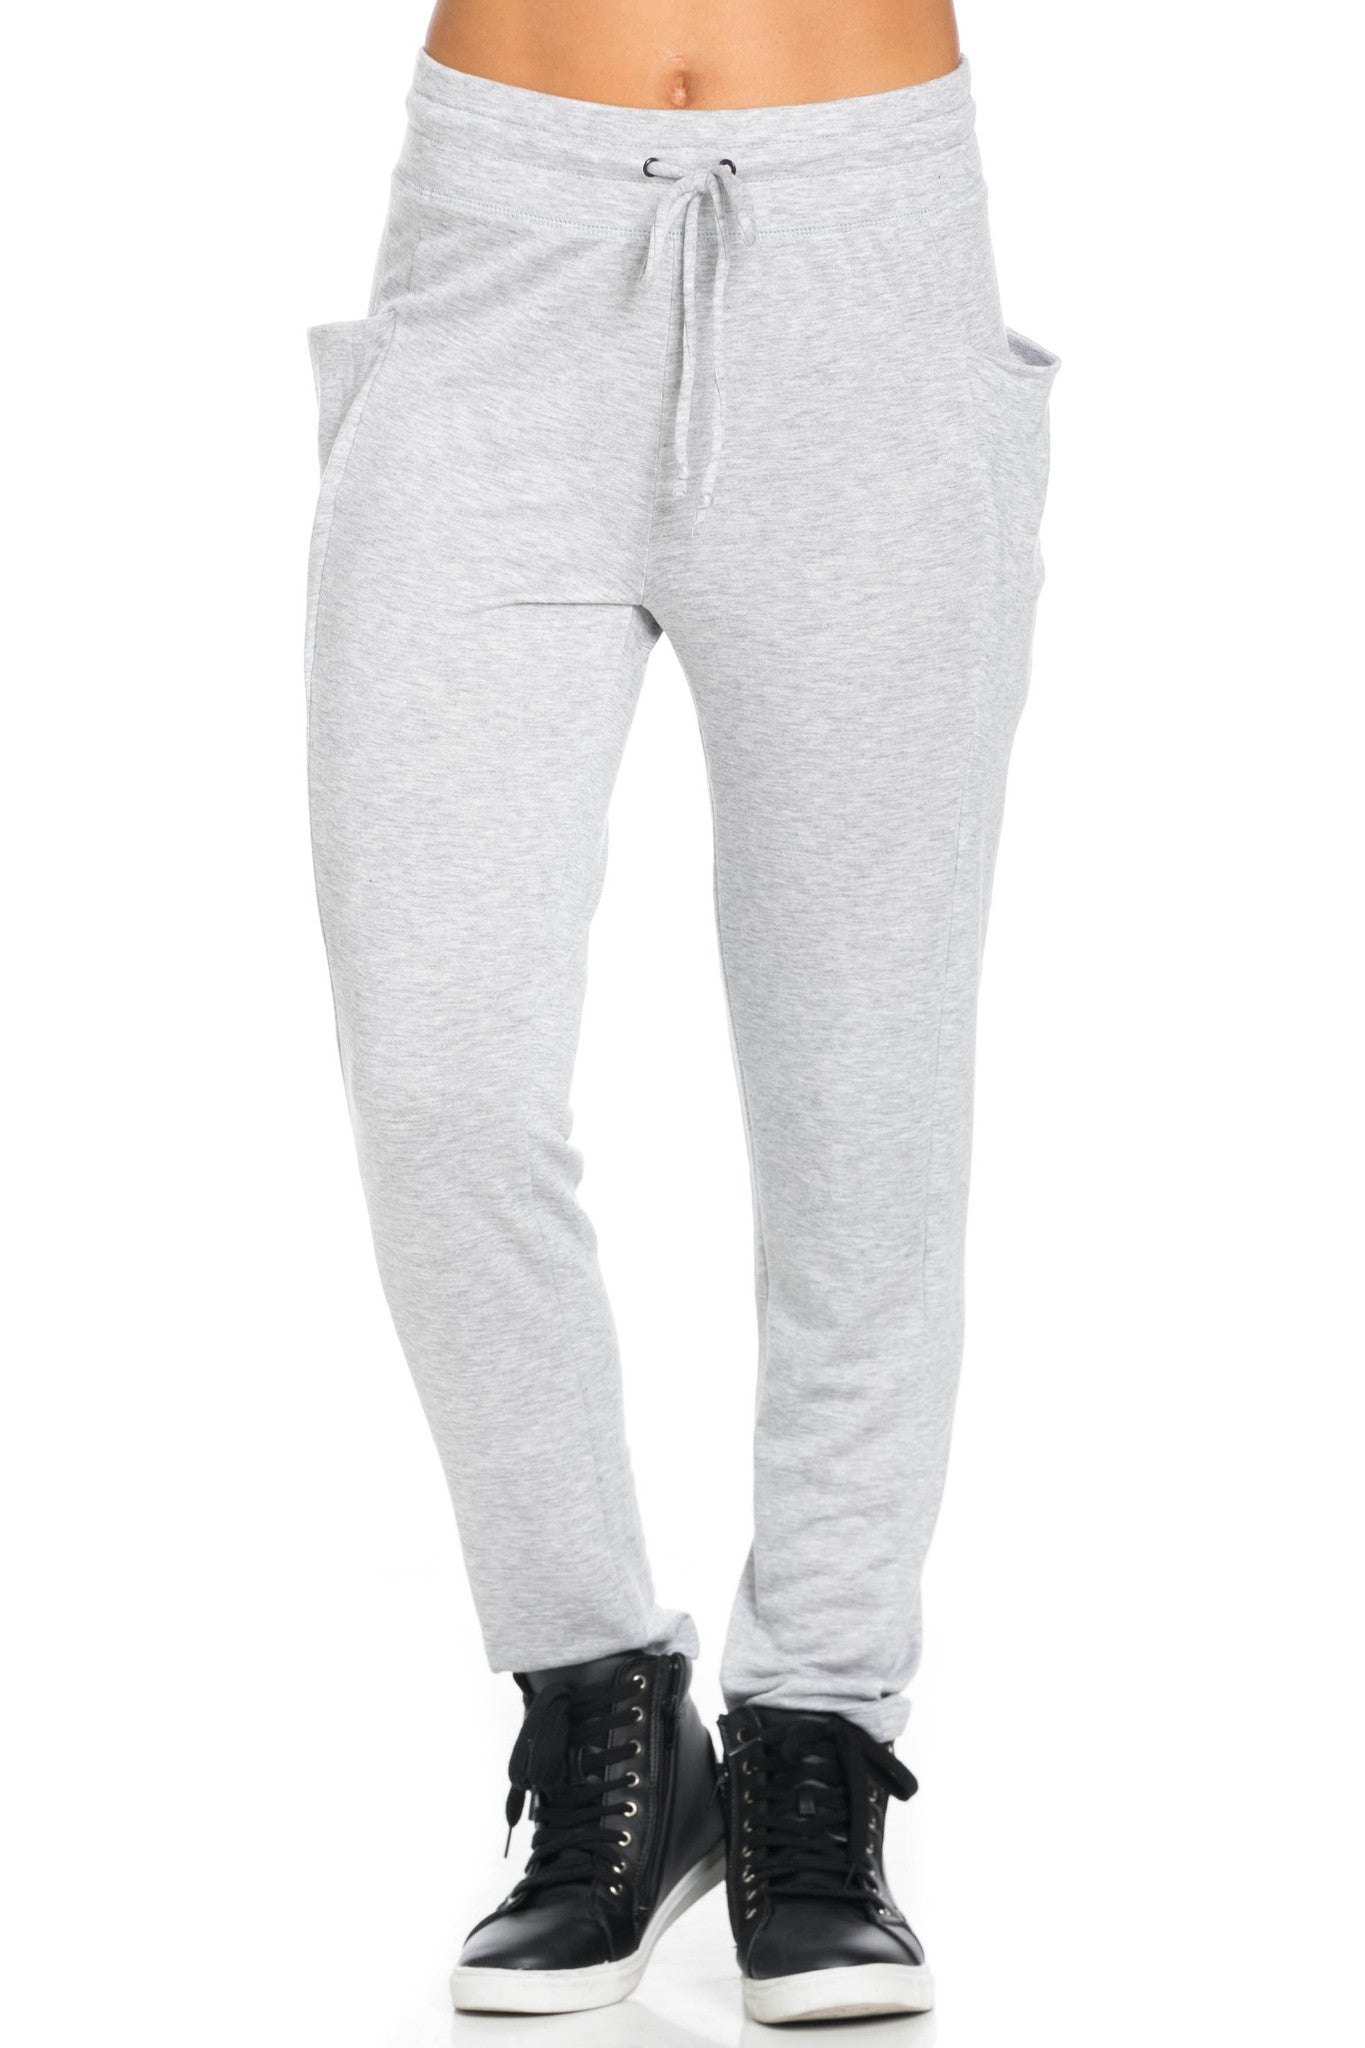 Heather Grey Harem Pants - Pants - My Yuccie - 3